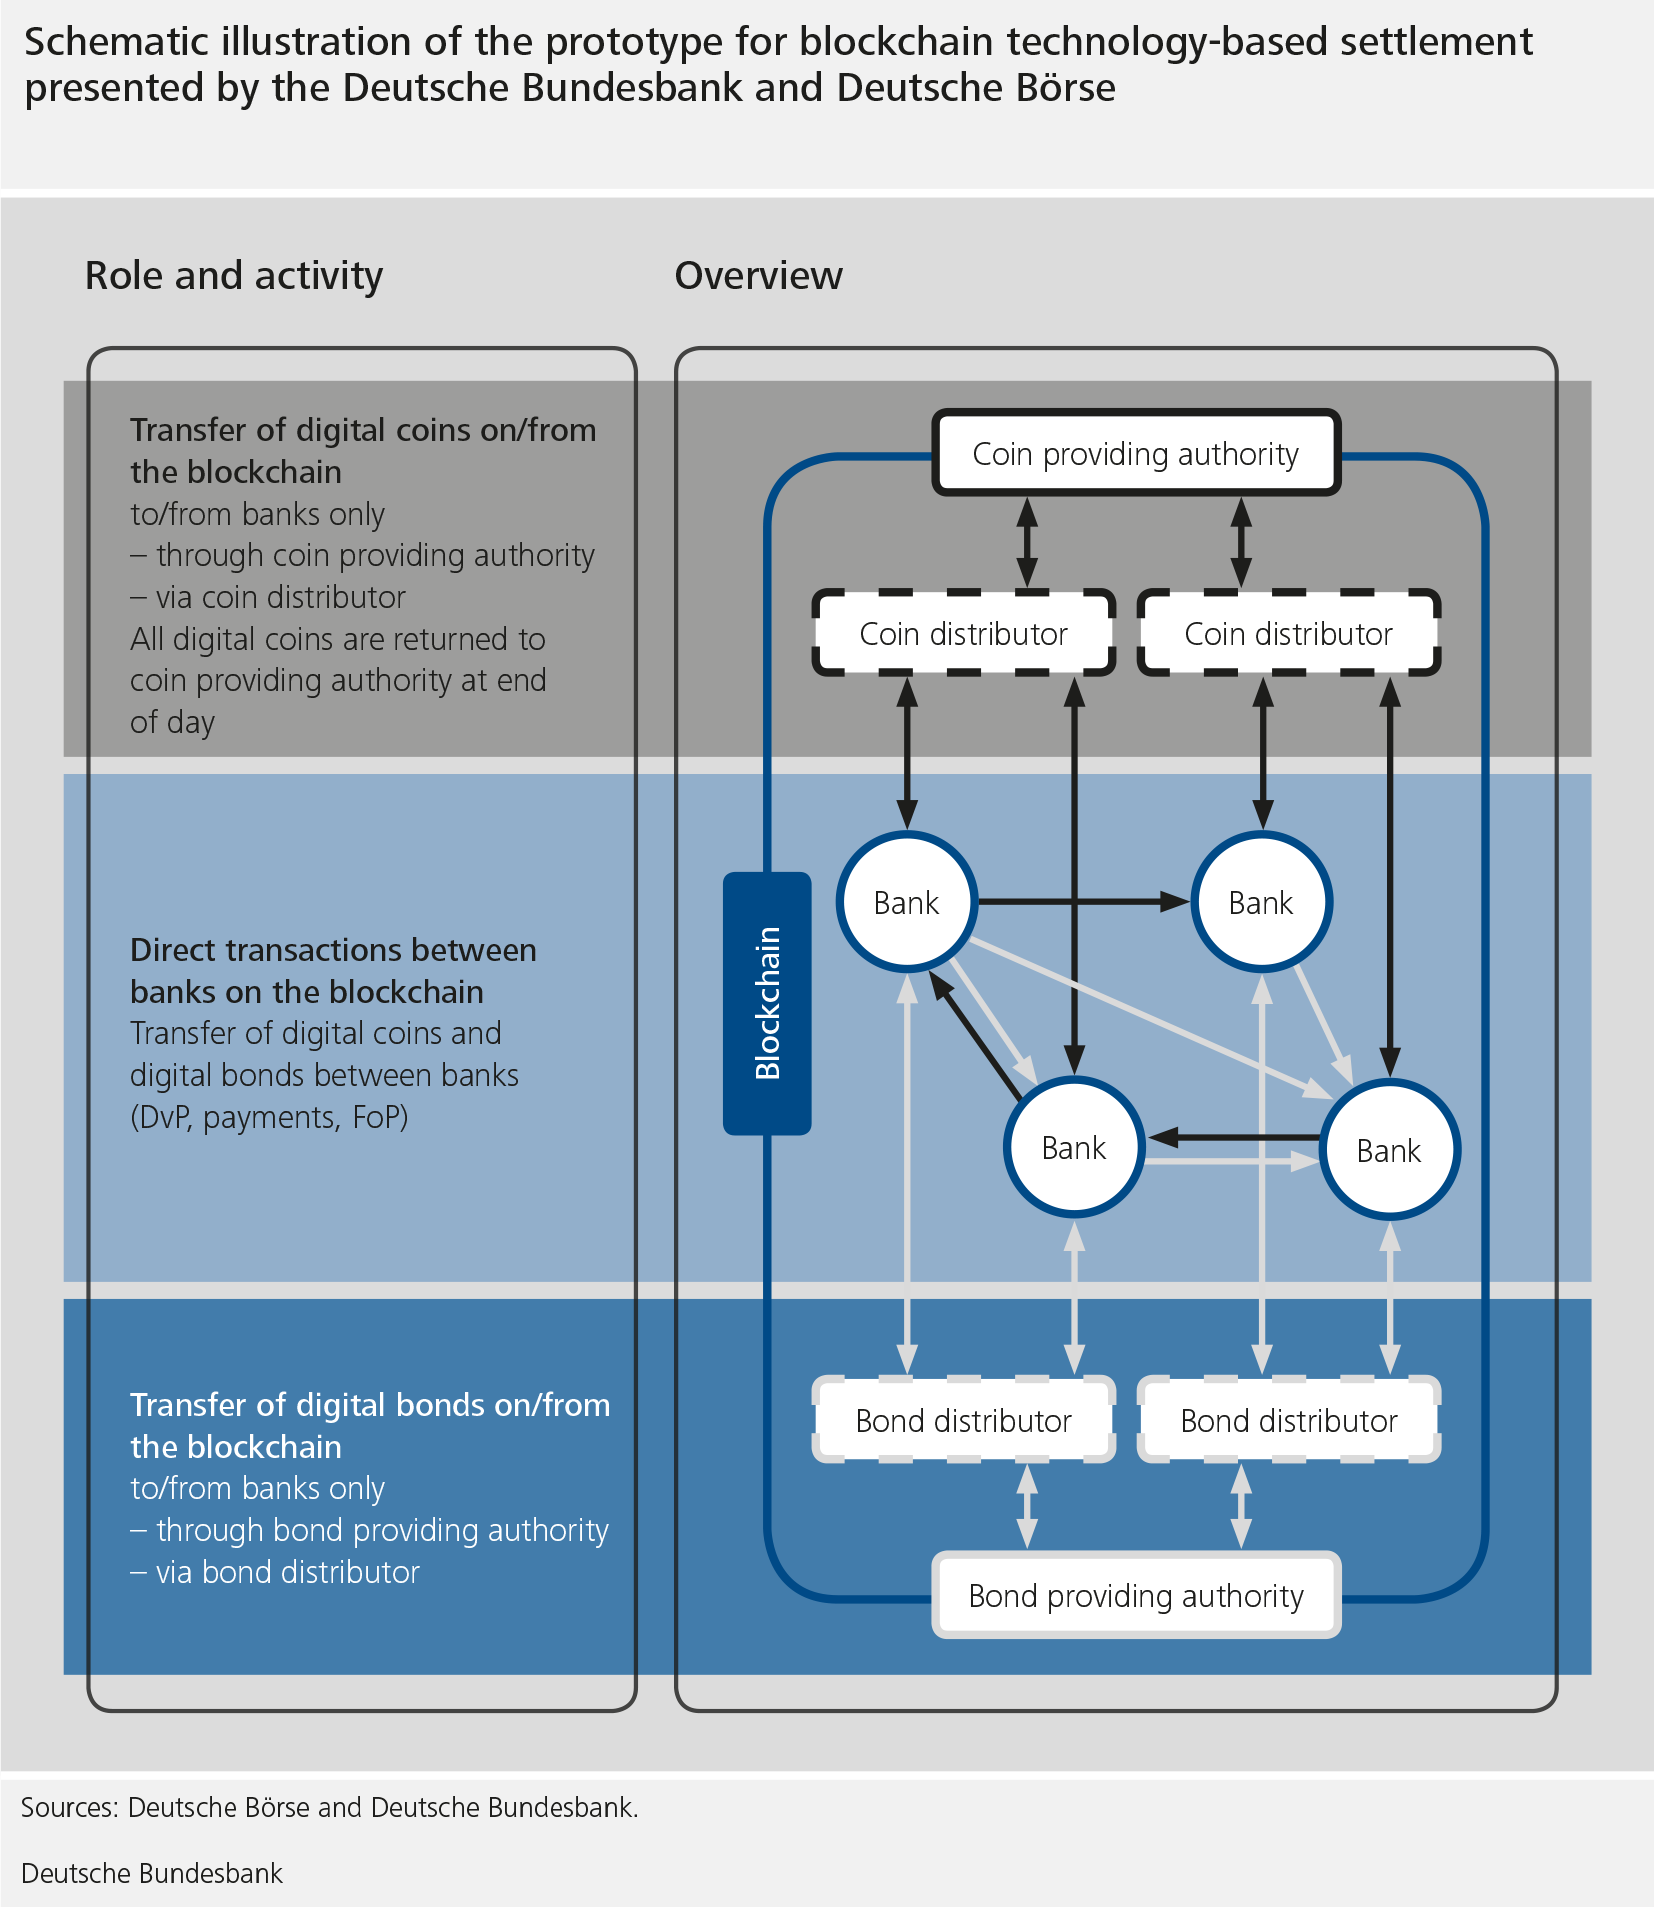 The graphic shows a schematic illustration of the prototype for blockchain technology-based settlement presented by the Deutsch